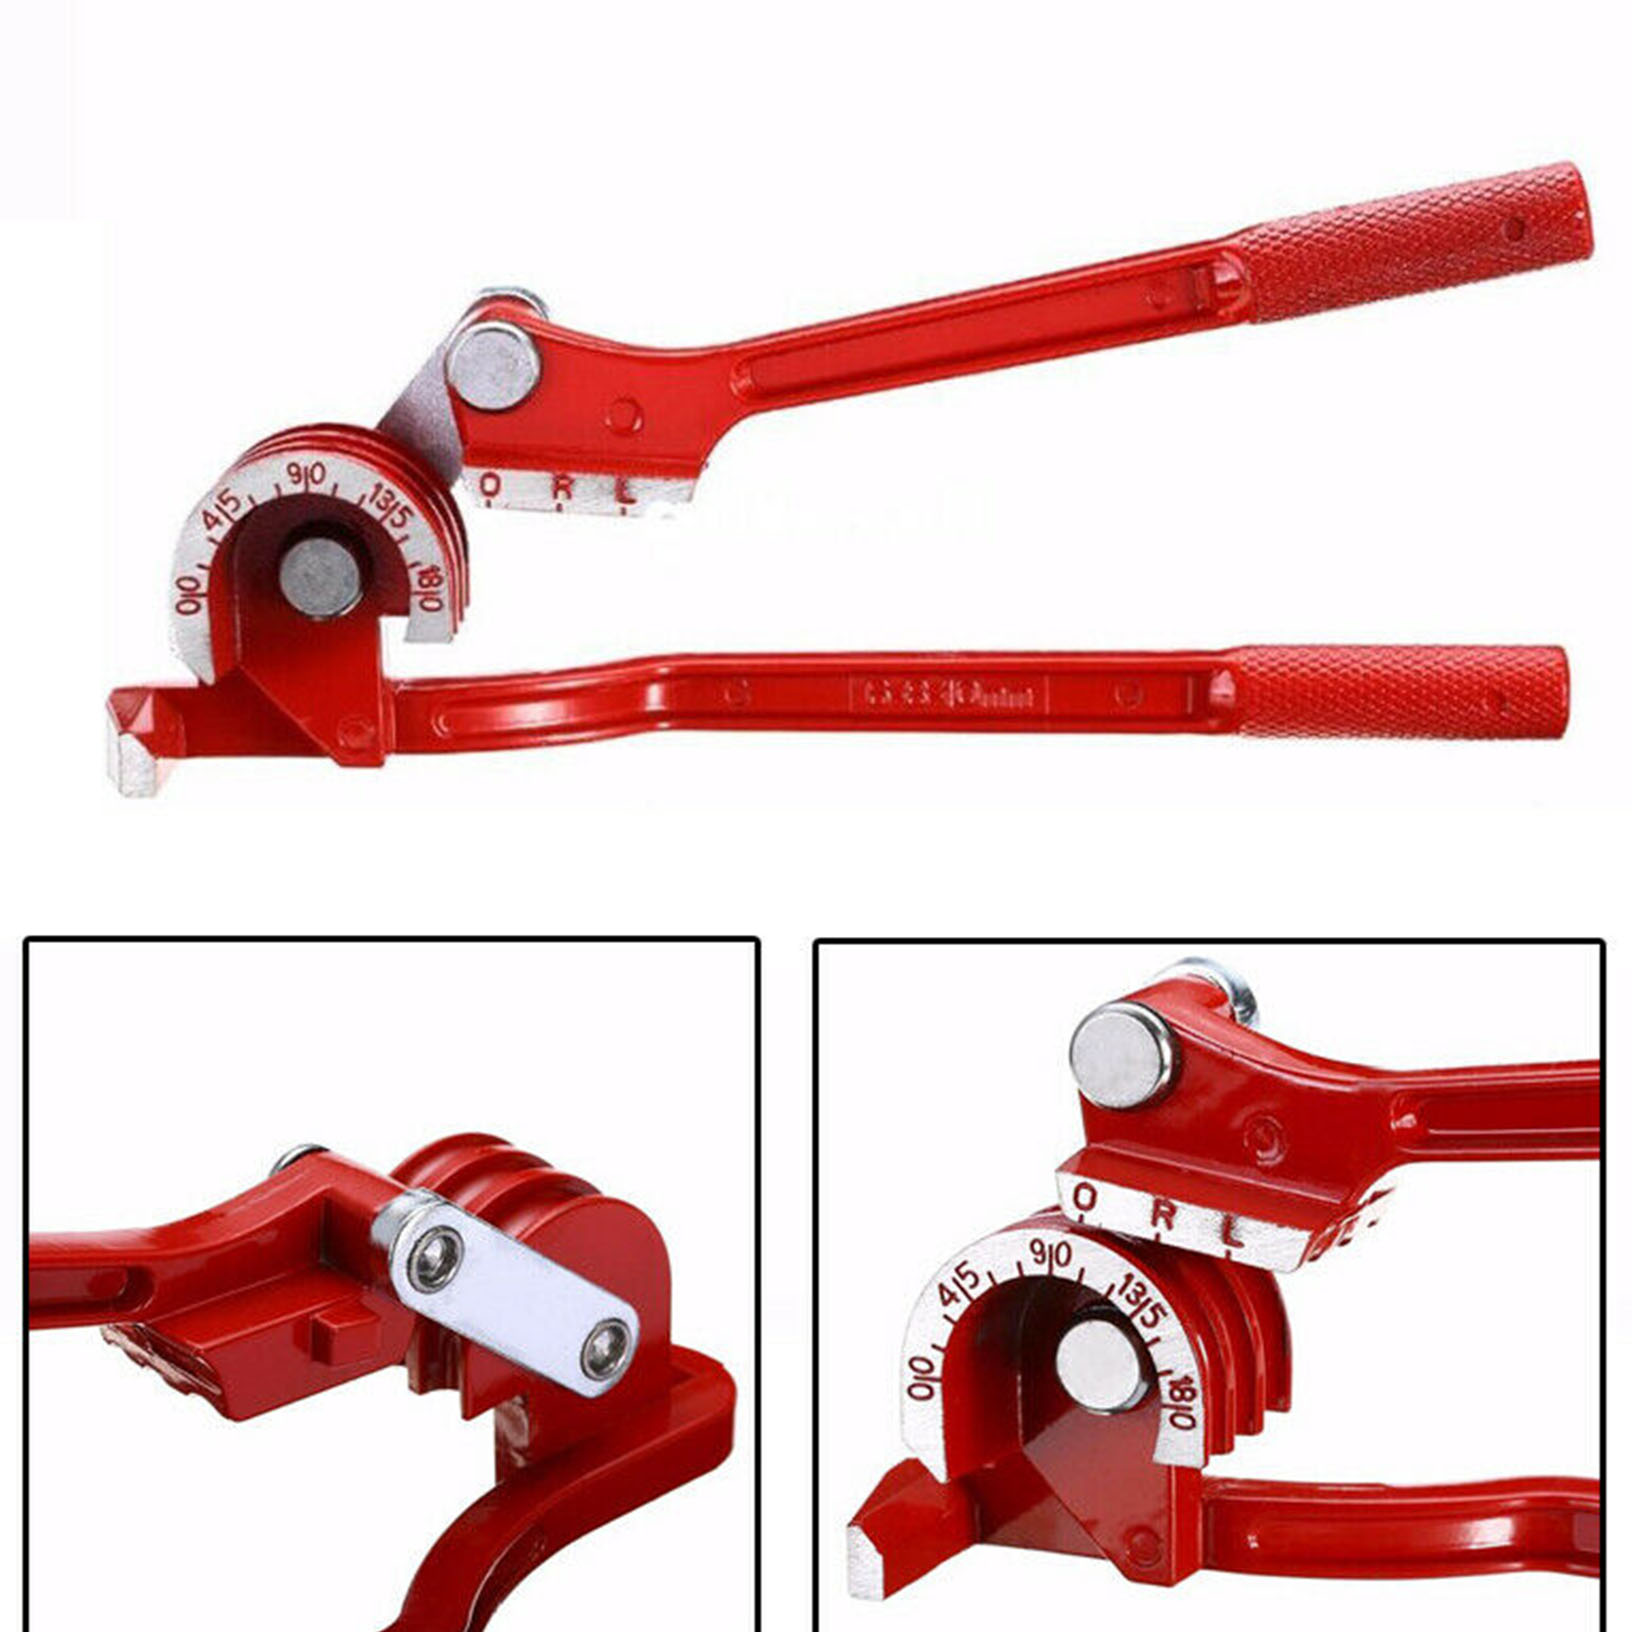 180 Degree Pipe Tube Bender Lever 1//4 and 3//8 5//16 8mm Plumbing Tools Hand Tool 6mm 10mm